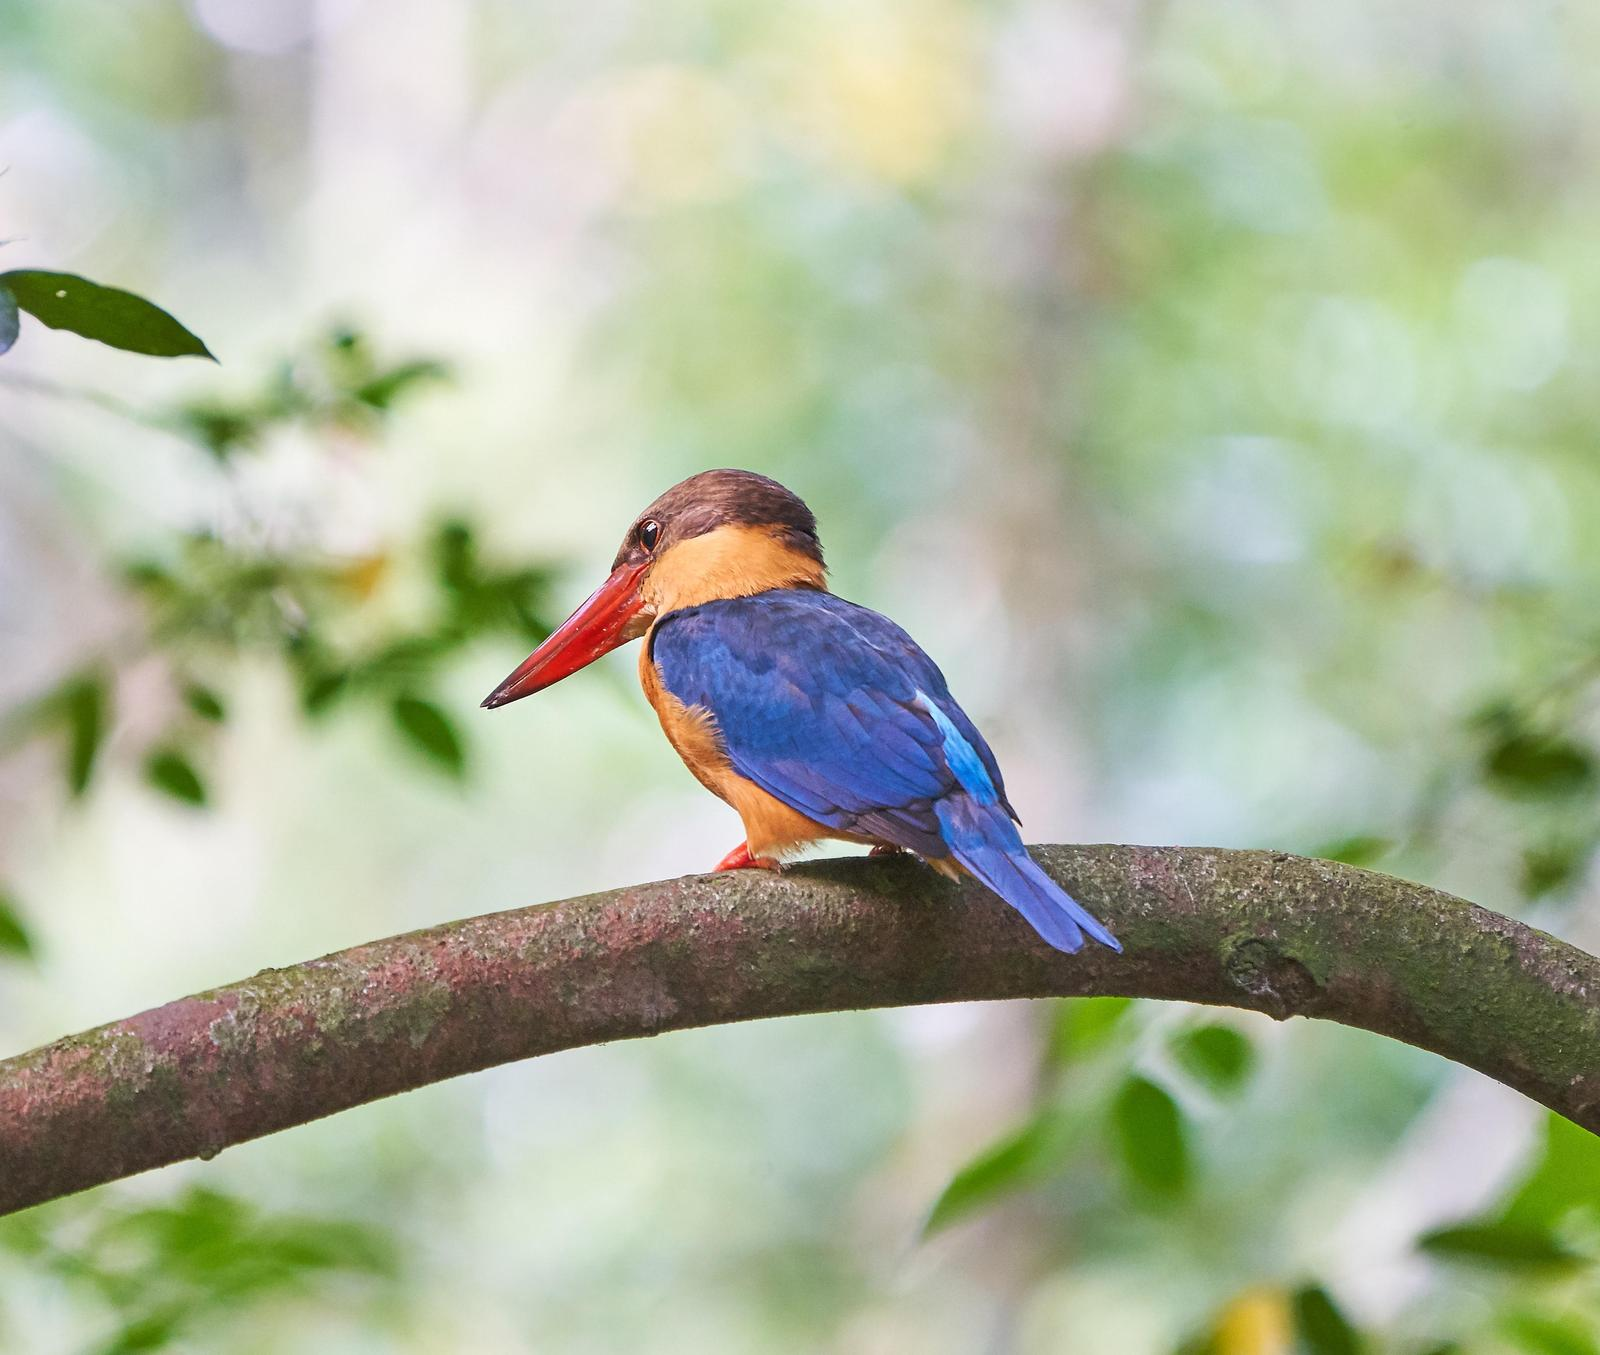 Stork-billed Kingfisher Photo by Steven Cheong